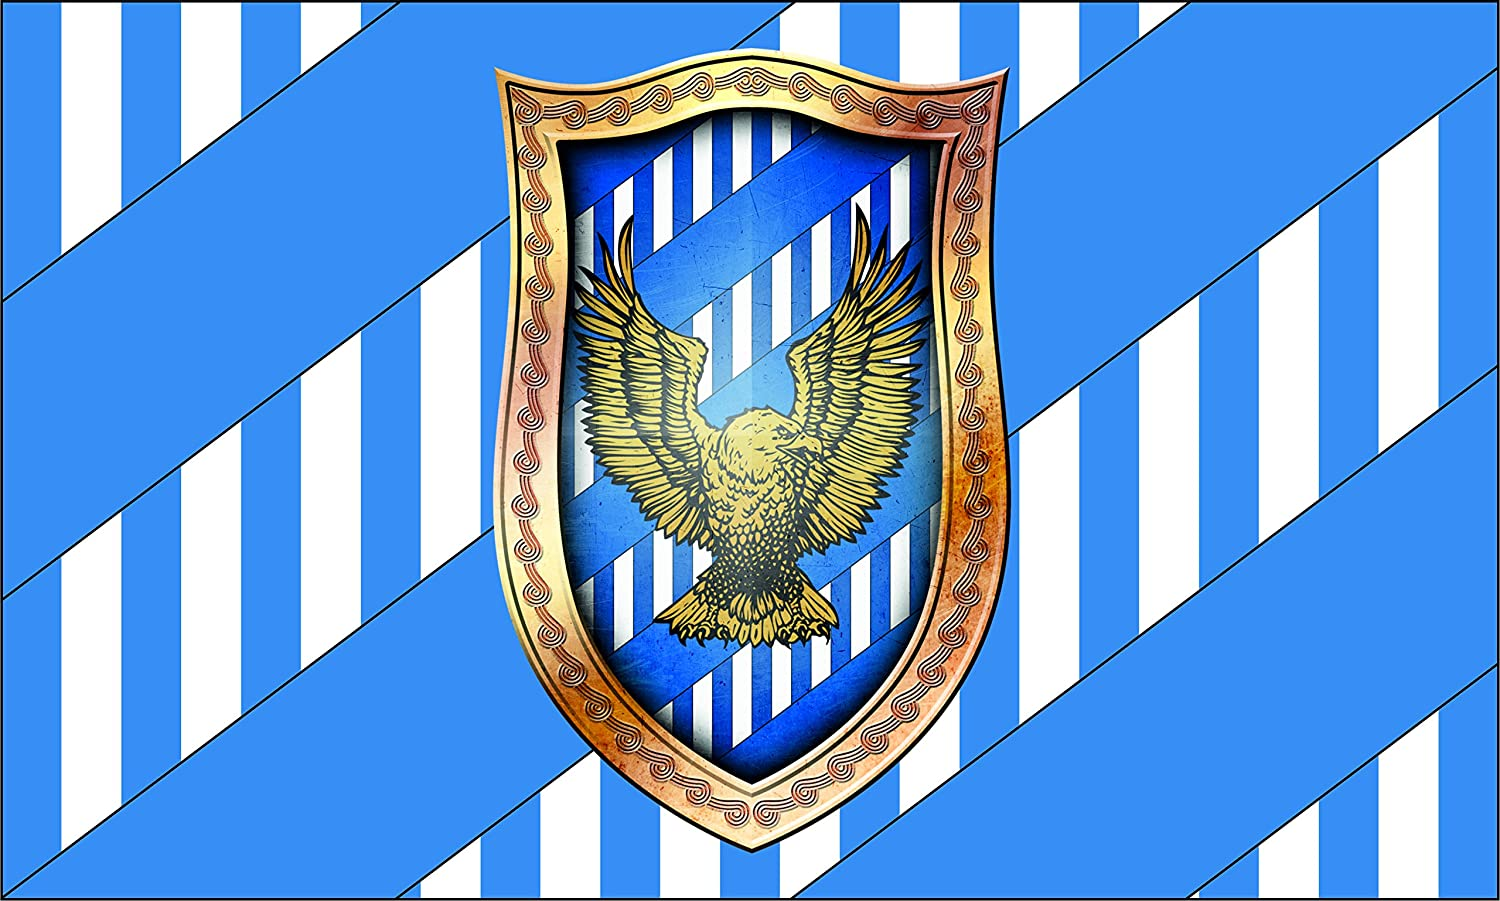 Amazon.com: Harry Potter Bandera | Ravenclaw Paisaje Bandera ...